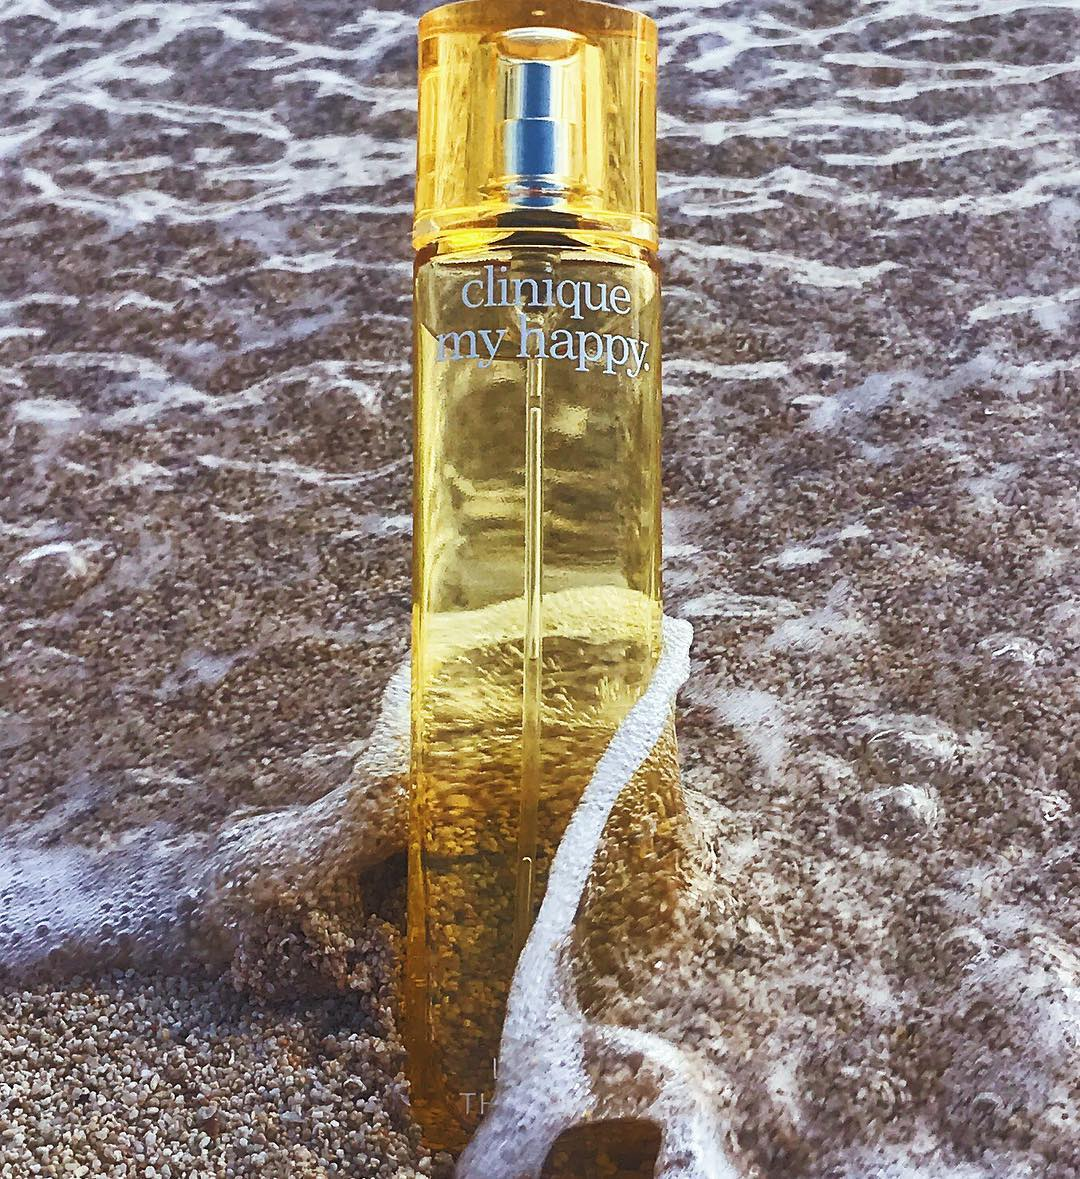 Clinique My Happy Perfume Spray in Lily of the Beach - Ảnh: Instagram